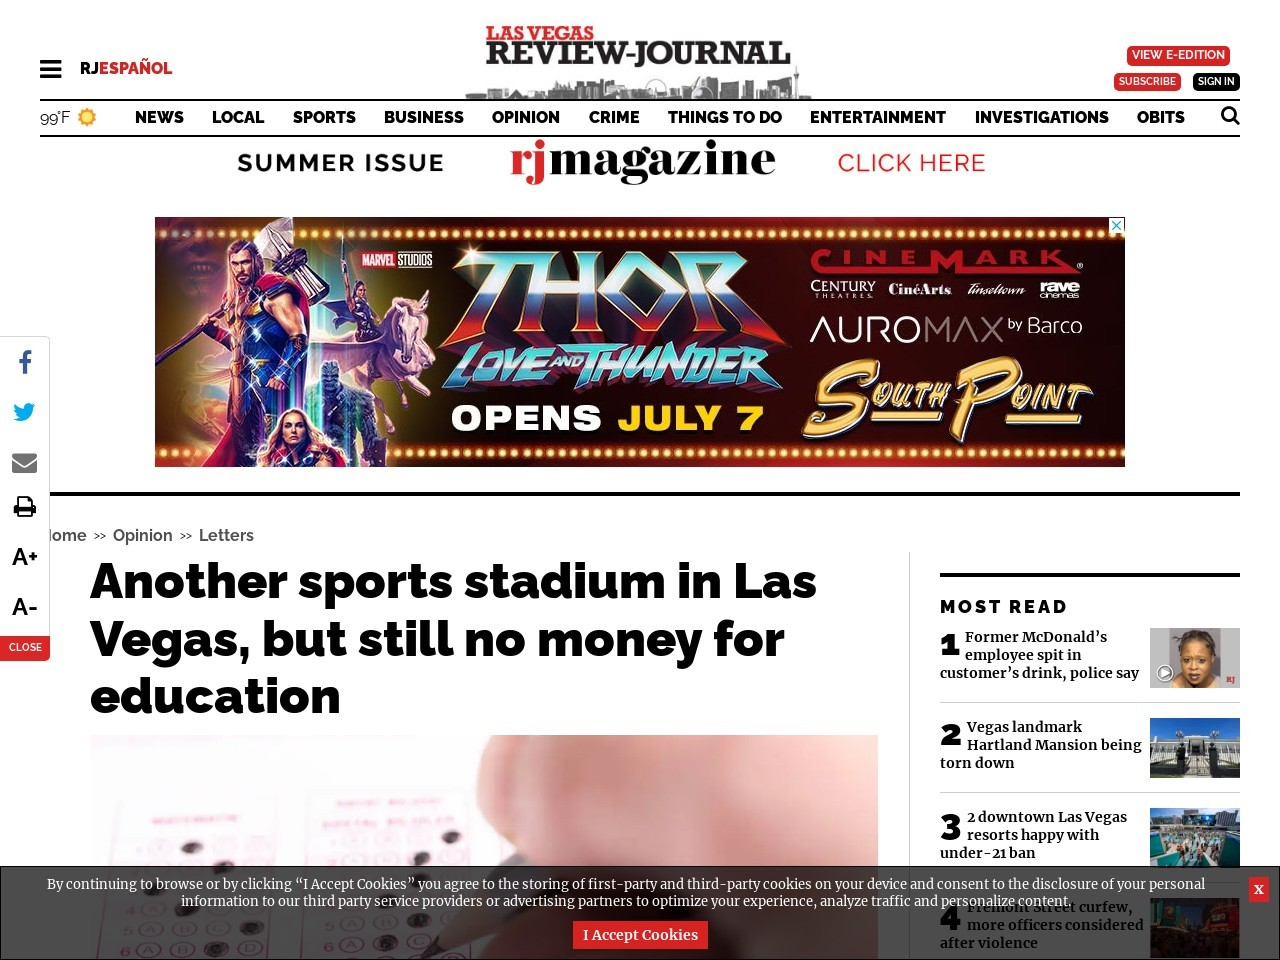 Another sports stadium in Las Vegas, but still no money for education